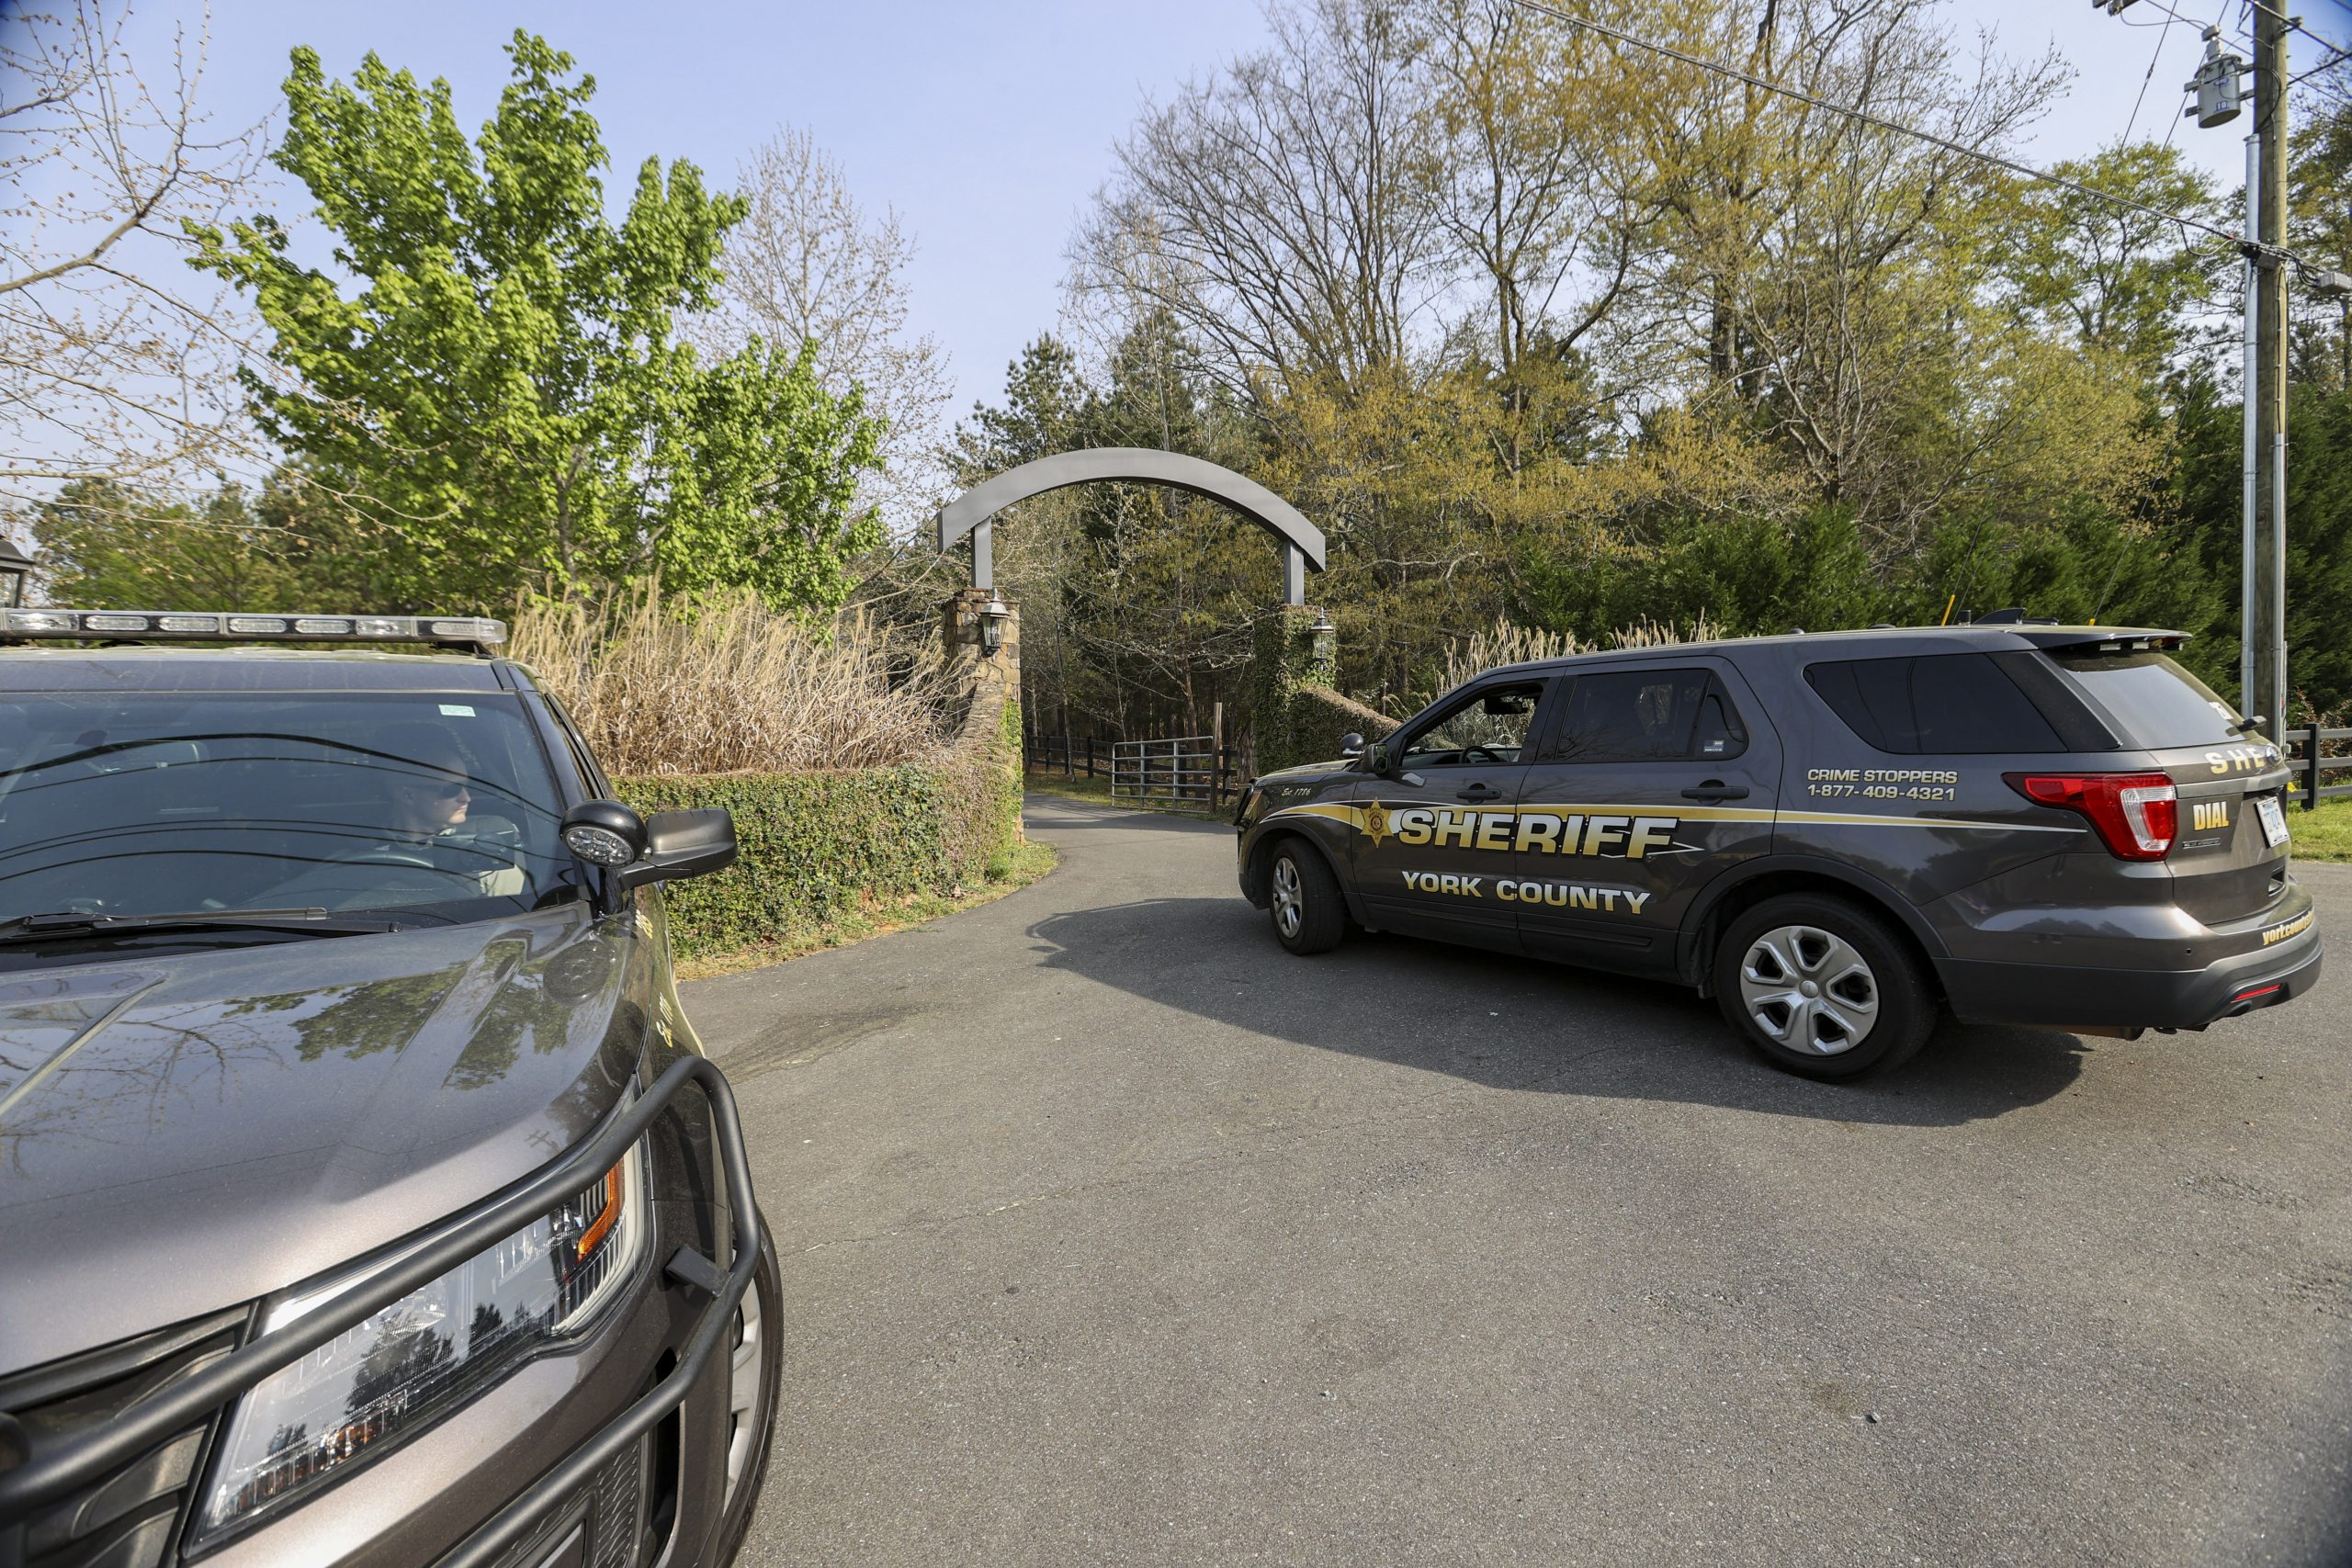 A York County sheriff vehicle drives onto the property where multiple people, including a prominent doctor, were fatally shot a day earlier, Thursday, April 8, 2021, in Rock Hill, S.C. A source briefed on the mass killing said the gunman was former NFL player Phillip Adams, who shot himself to death early Thursday. (AP Photo/Nell Redmond)